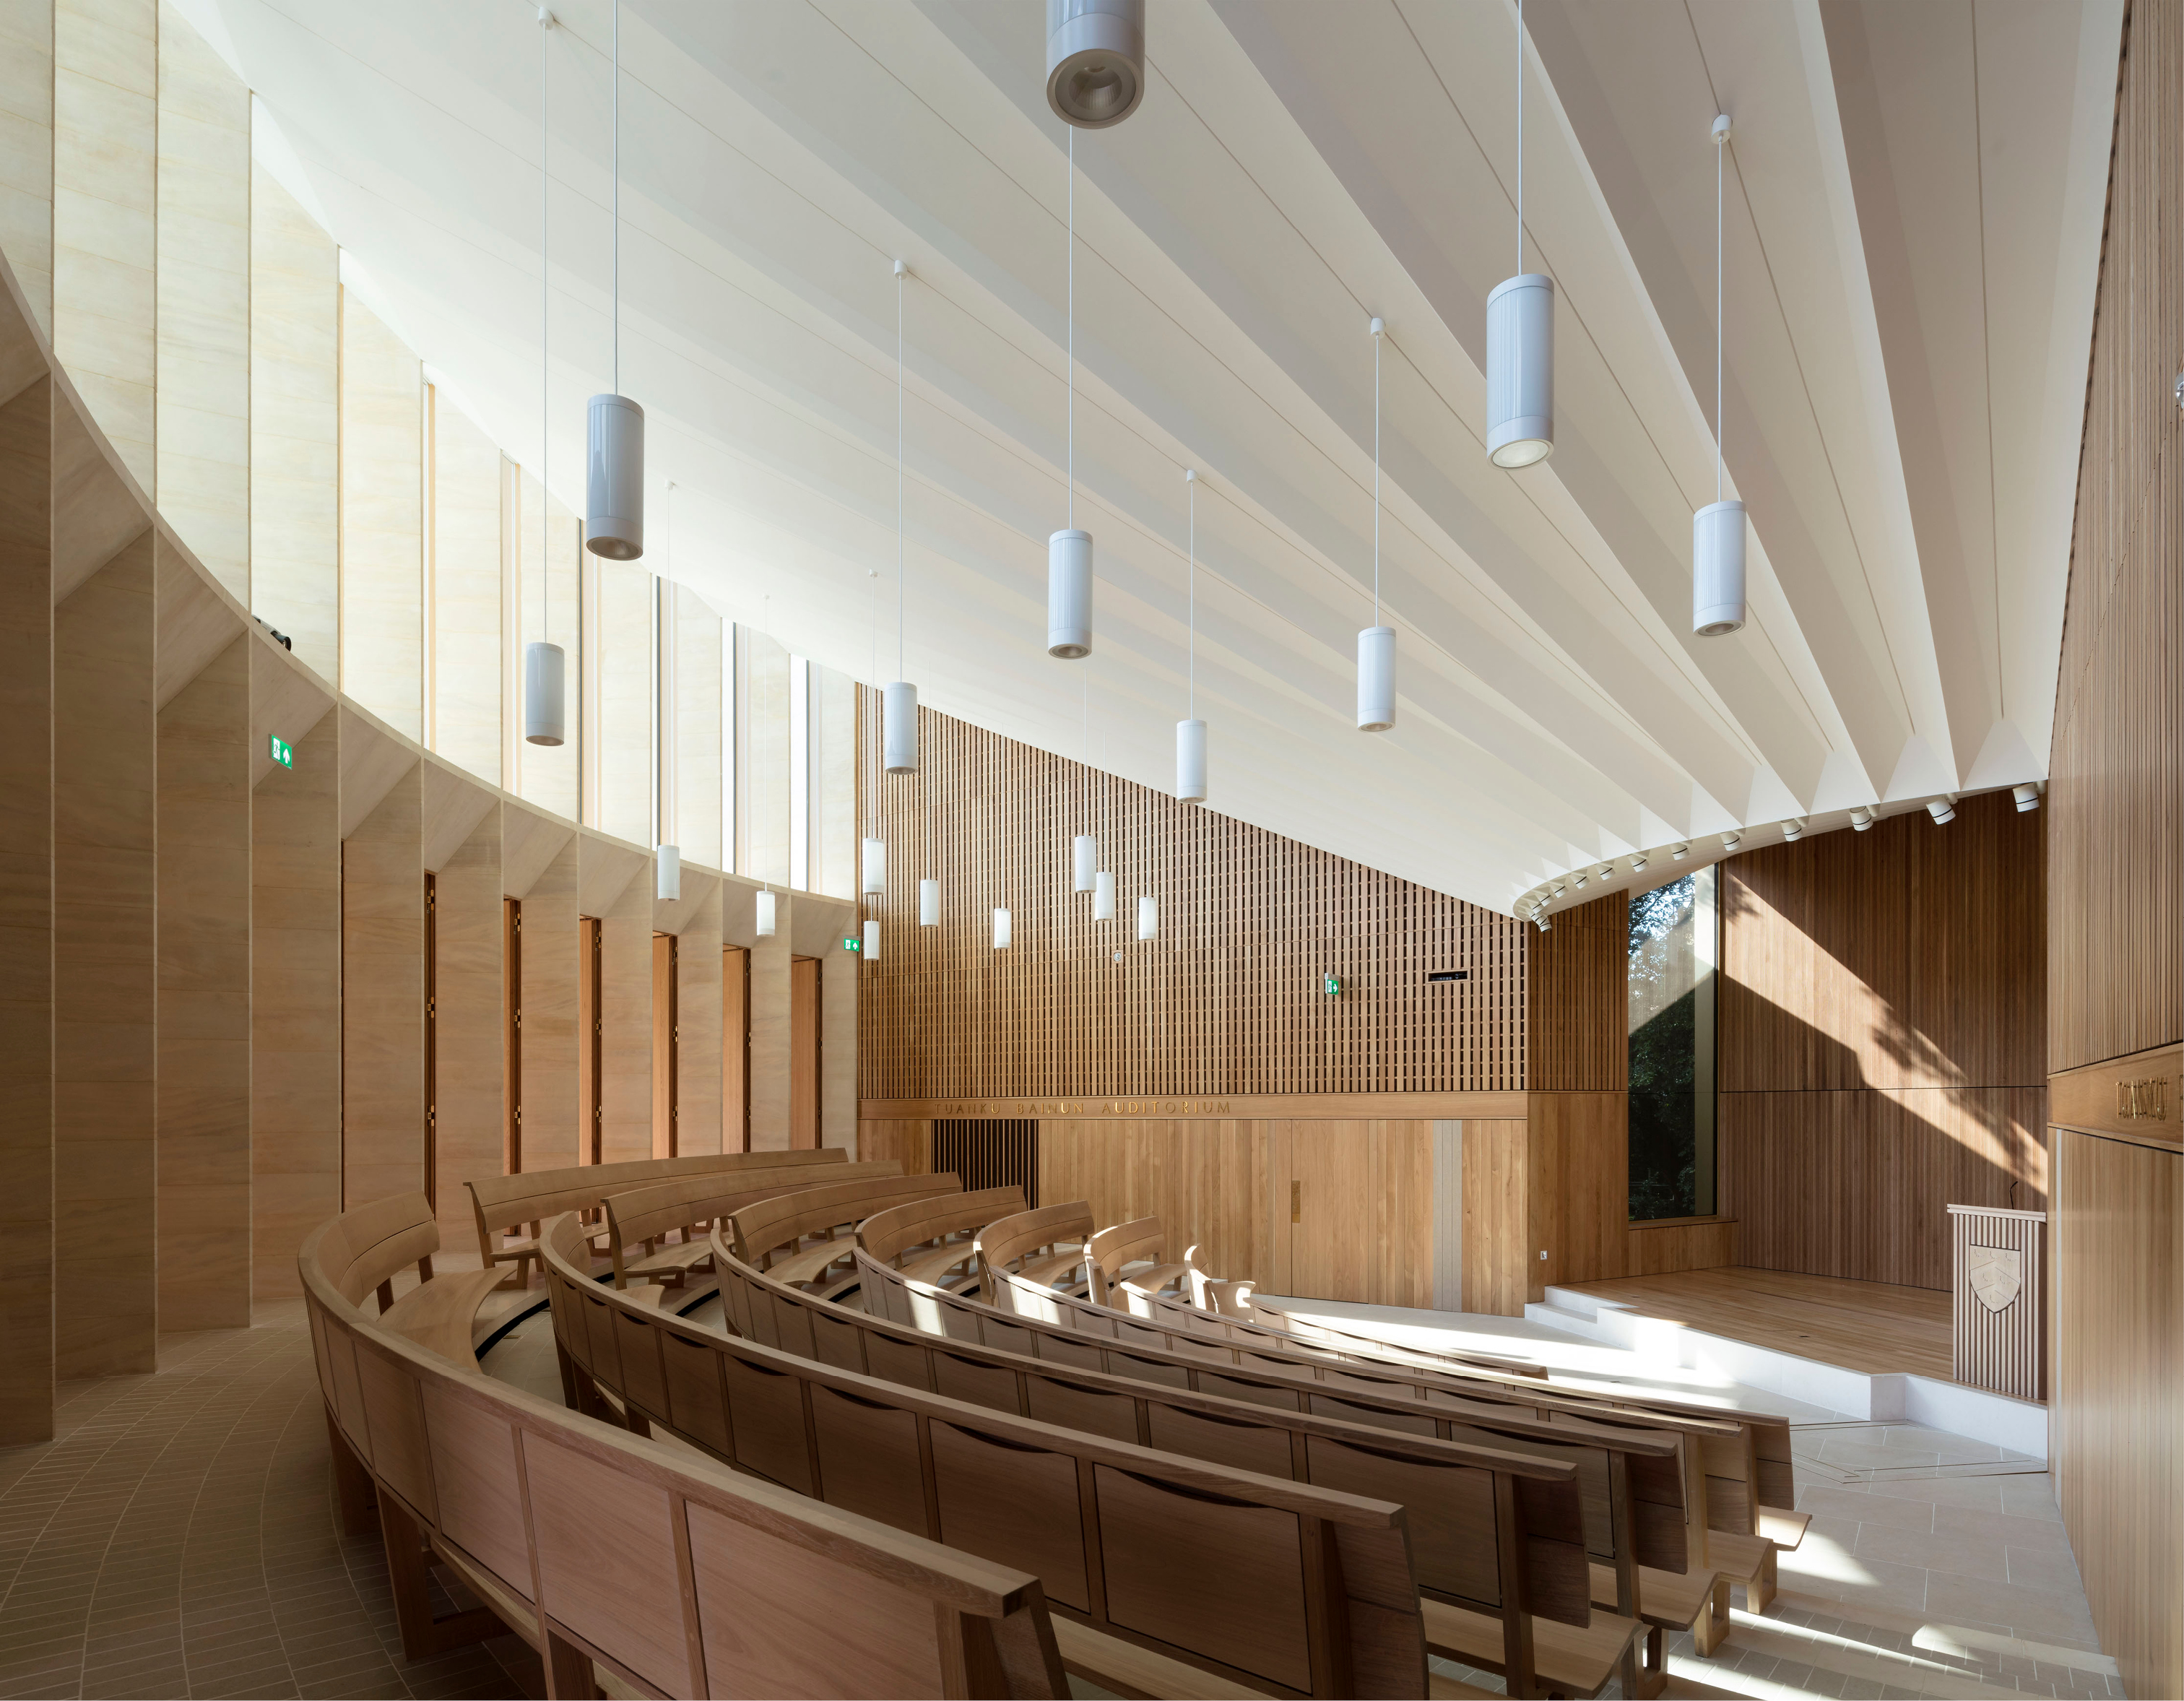 <p><span>The auditorium is lined with vertical oak boards which modulate the acoustic. © Nick Kane</span></p>